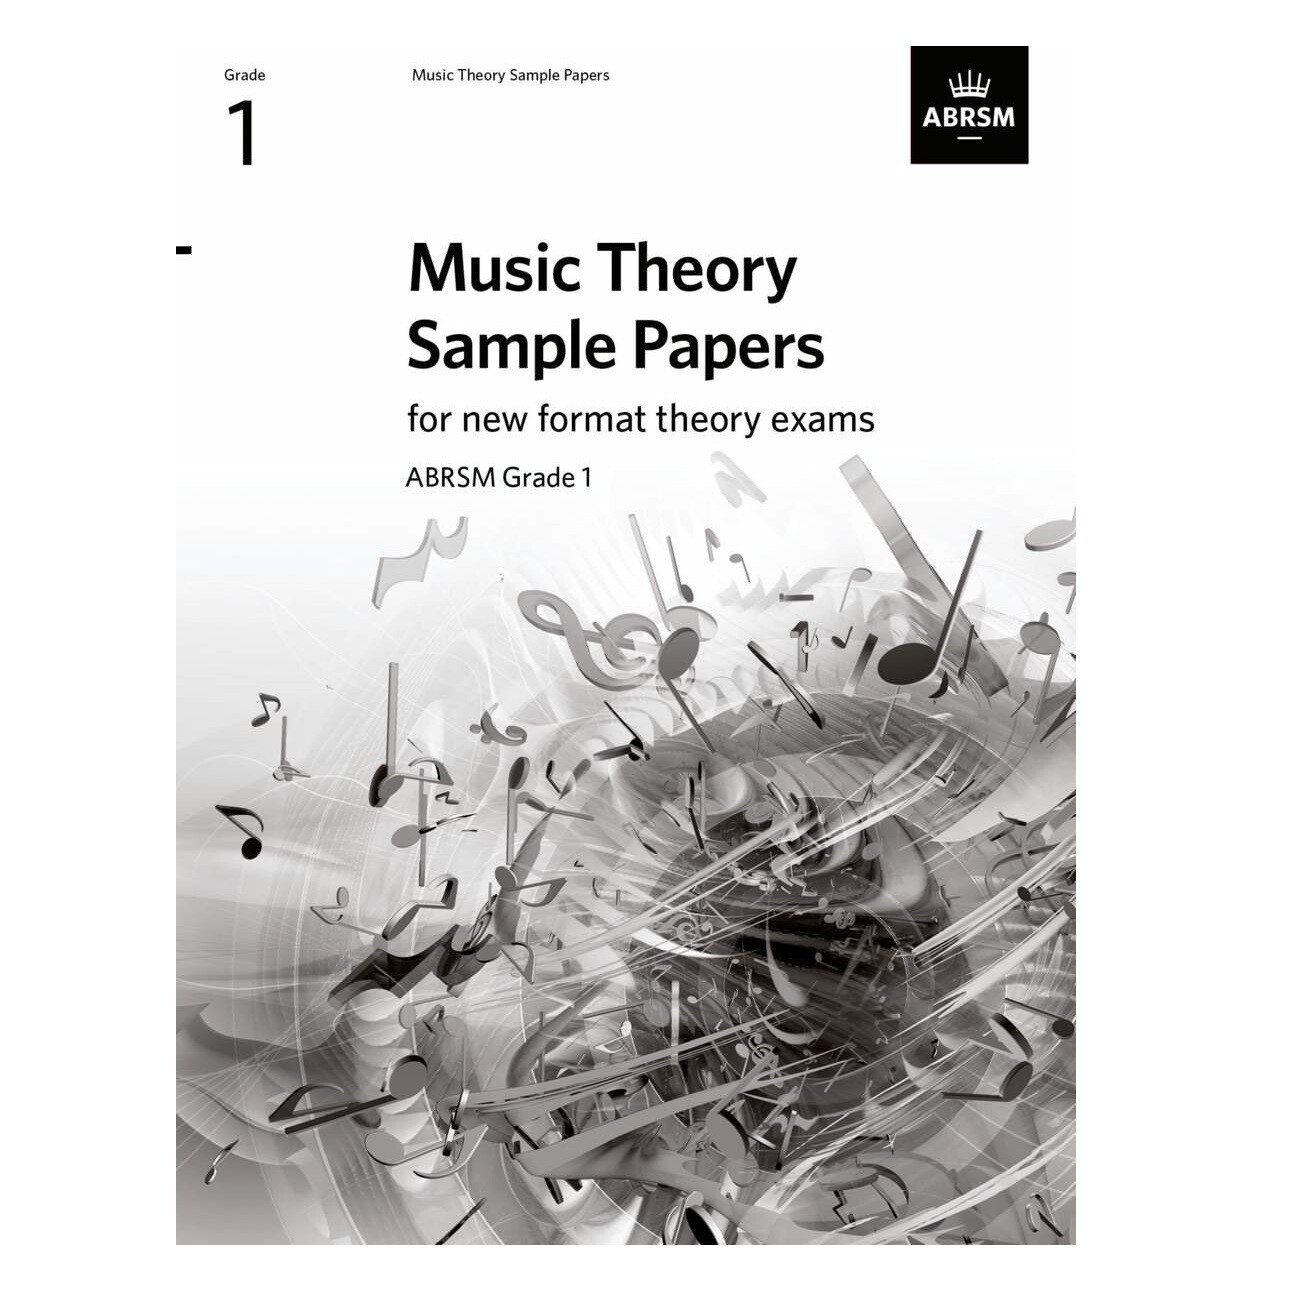 ABRSM Music Theory Sample Papers (new 2020 format) - Grade 1